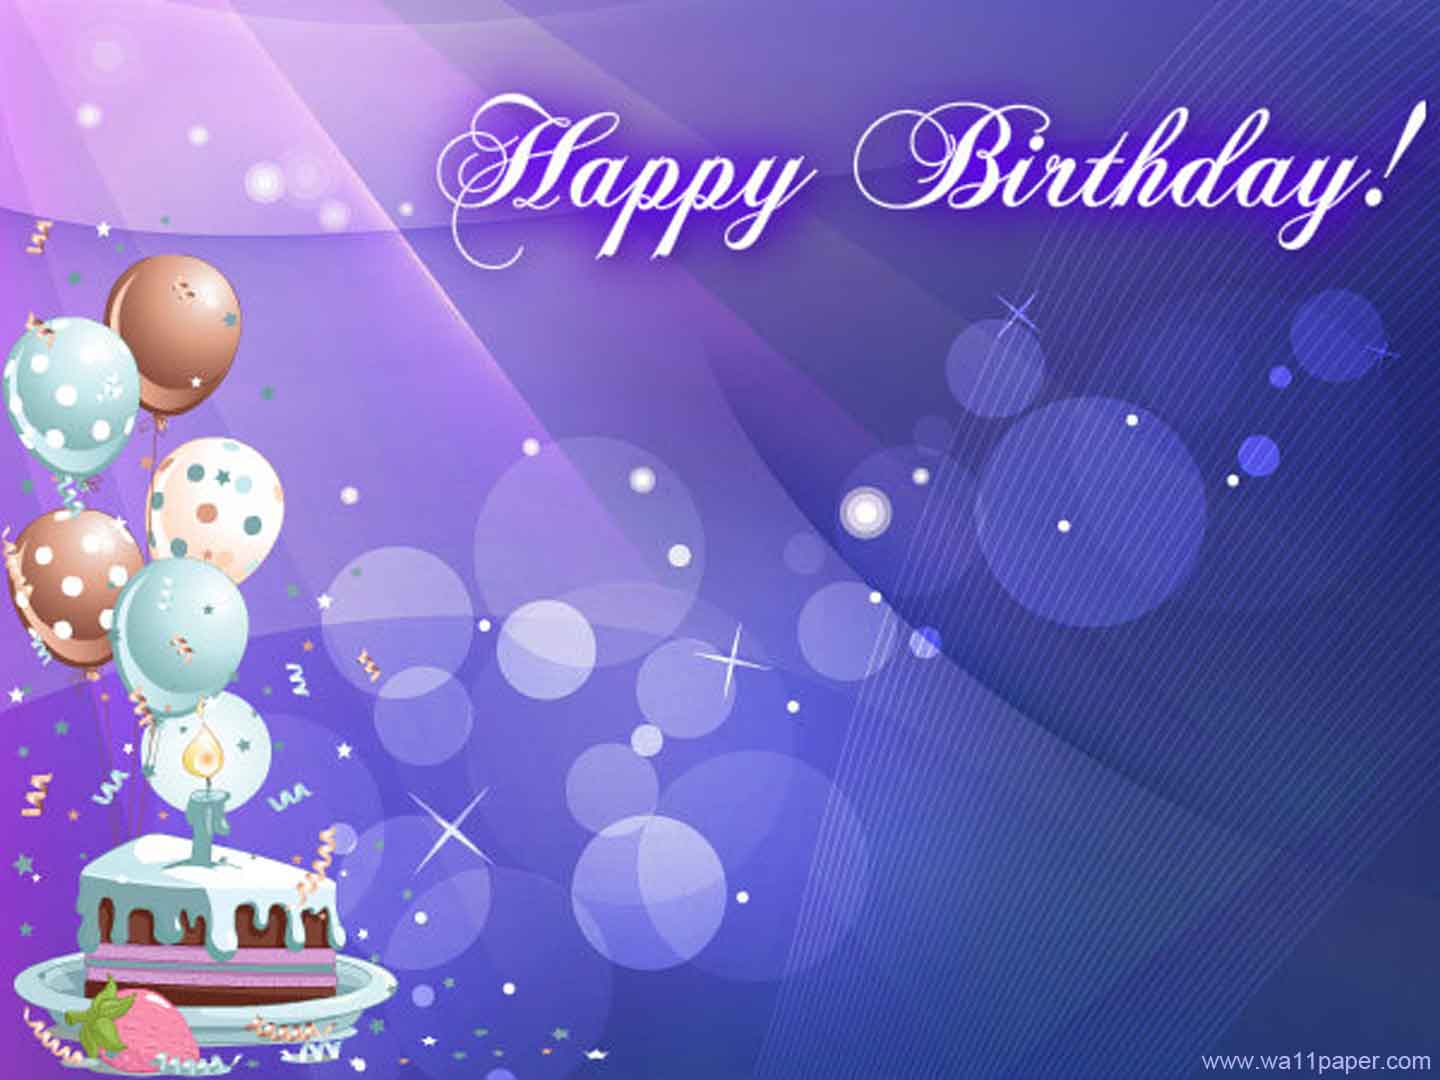 Images for blue birthday backgrounds wallpaper